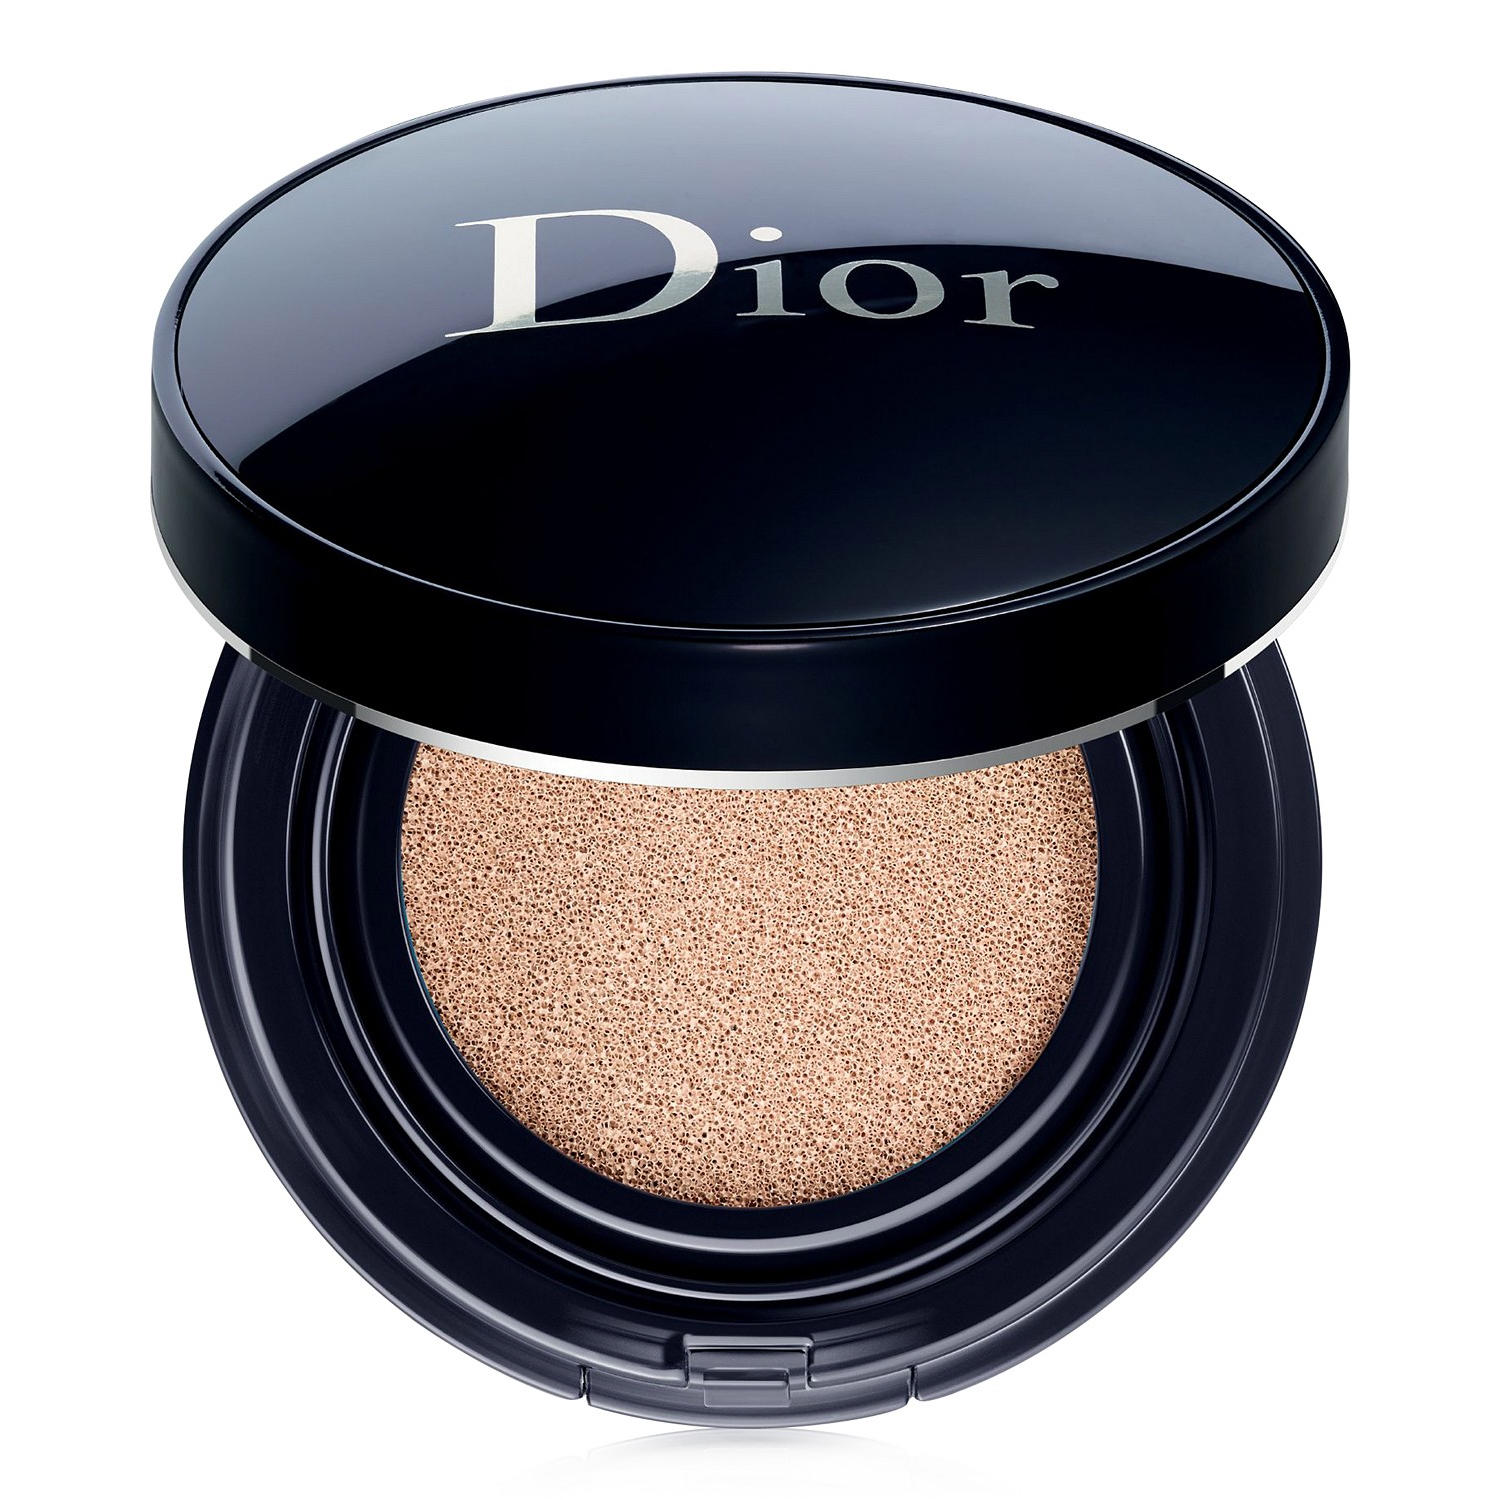 Dior Diorskin Forever Perfect Cushion Foundation Beige 020